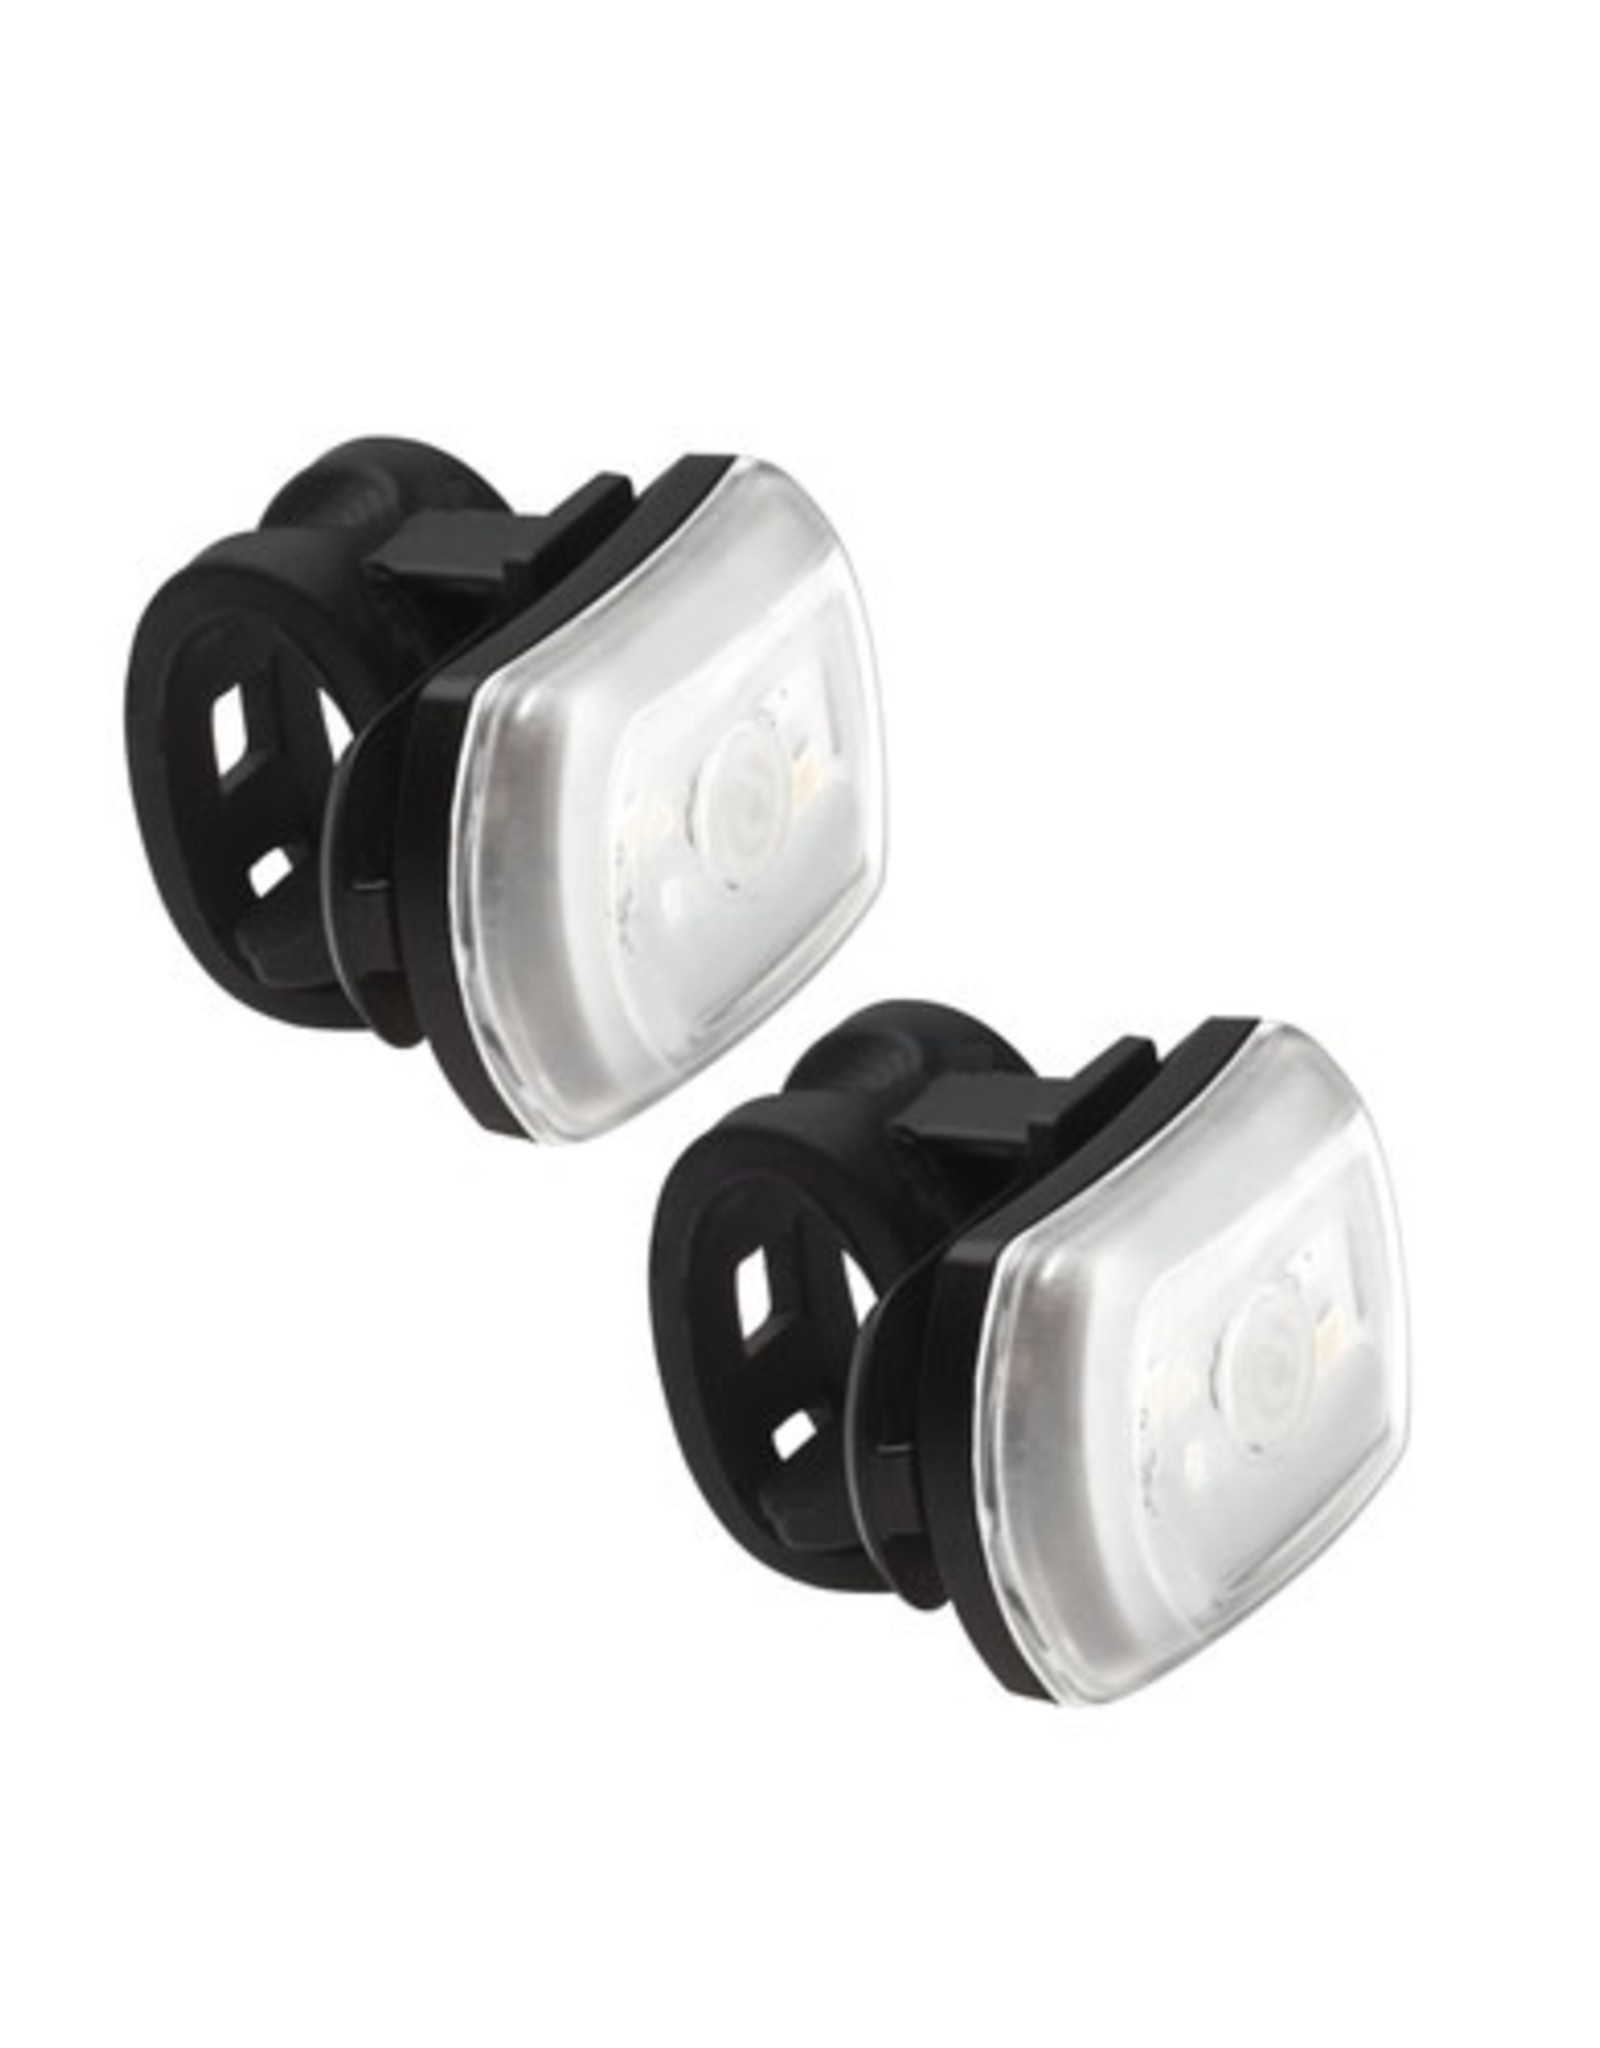 Blackburn BLACKBURN 2'FER USB Front/Rear Light (2-Pack)